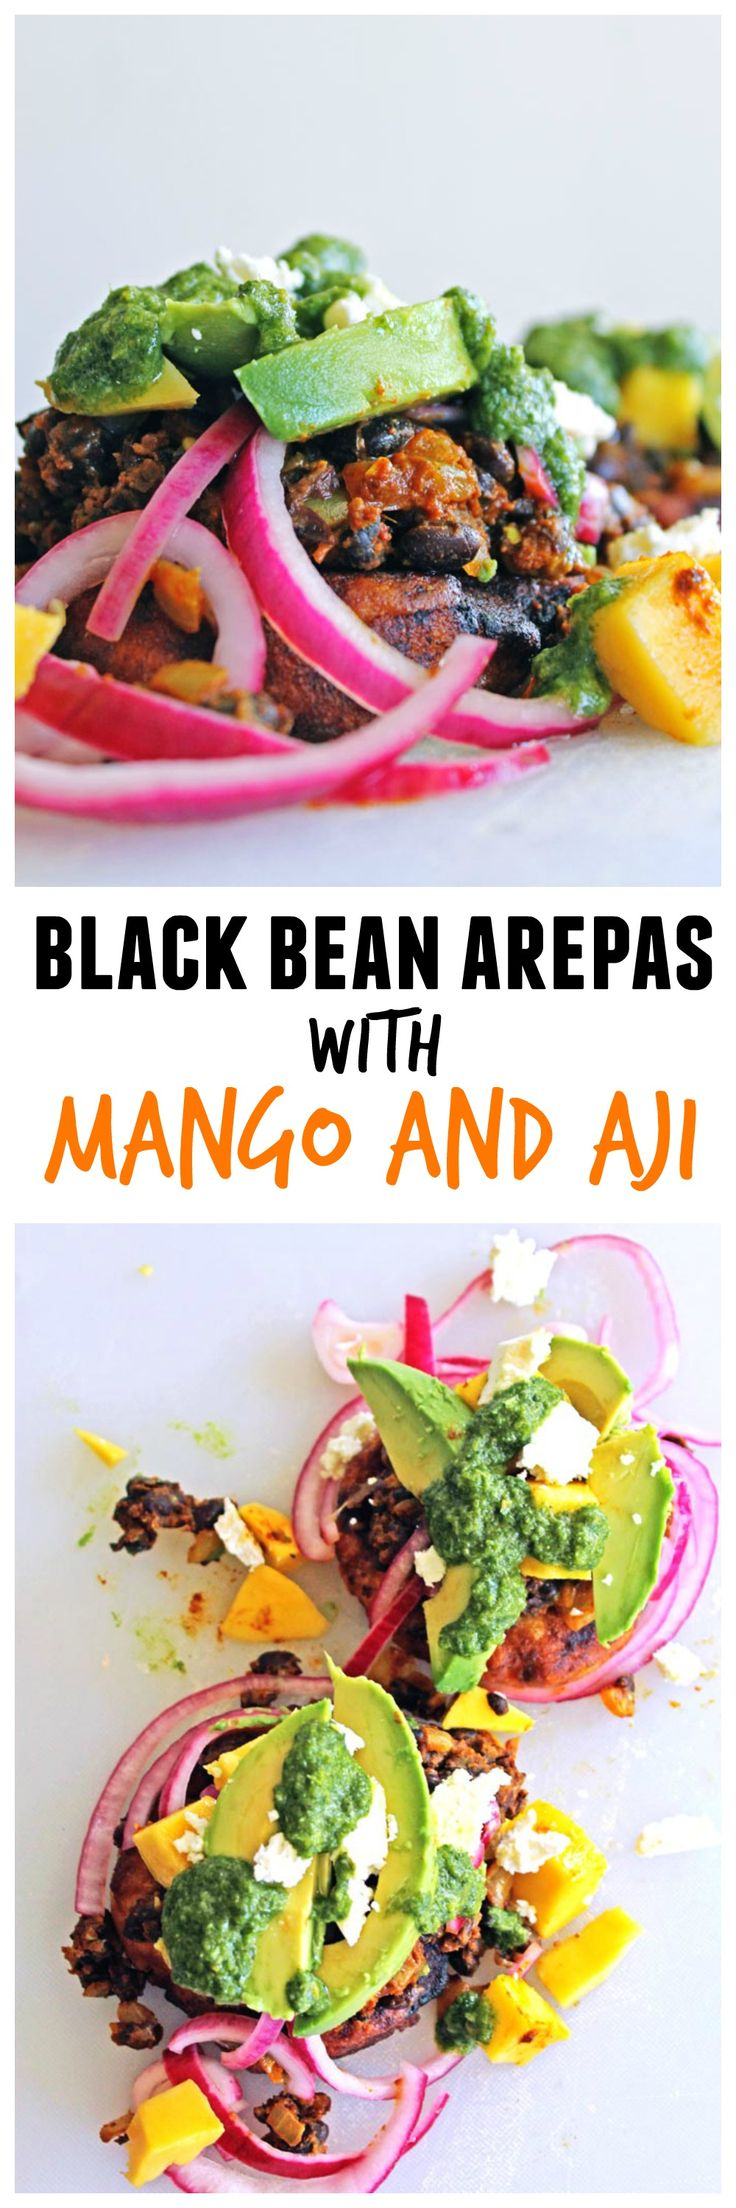 sub plant based cheese....  Black bean arepas with mango and aji from Global Feasts: Colombia!